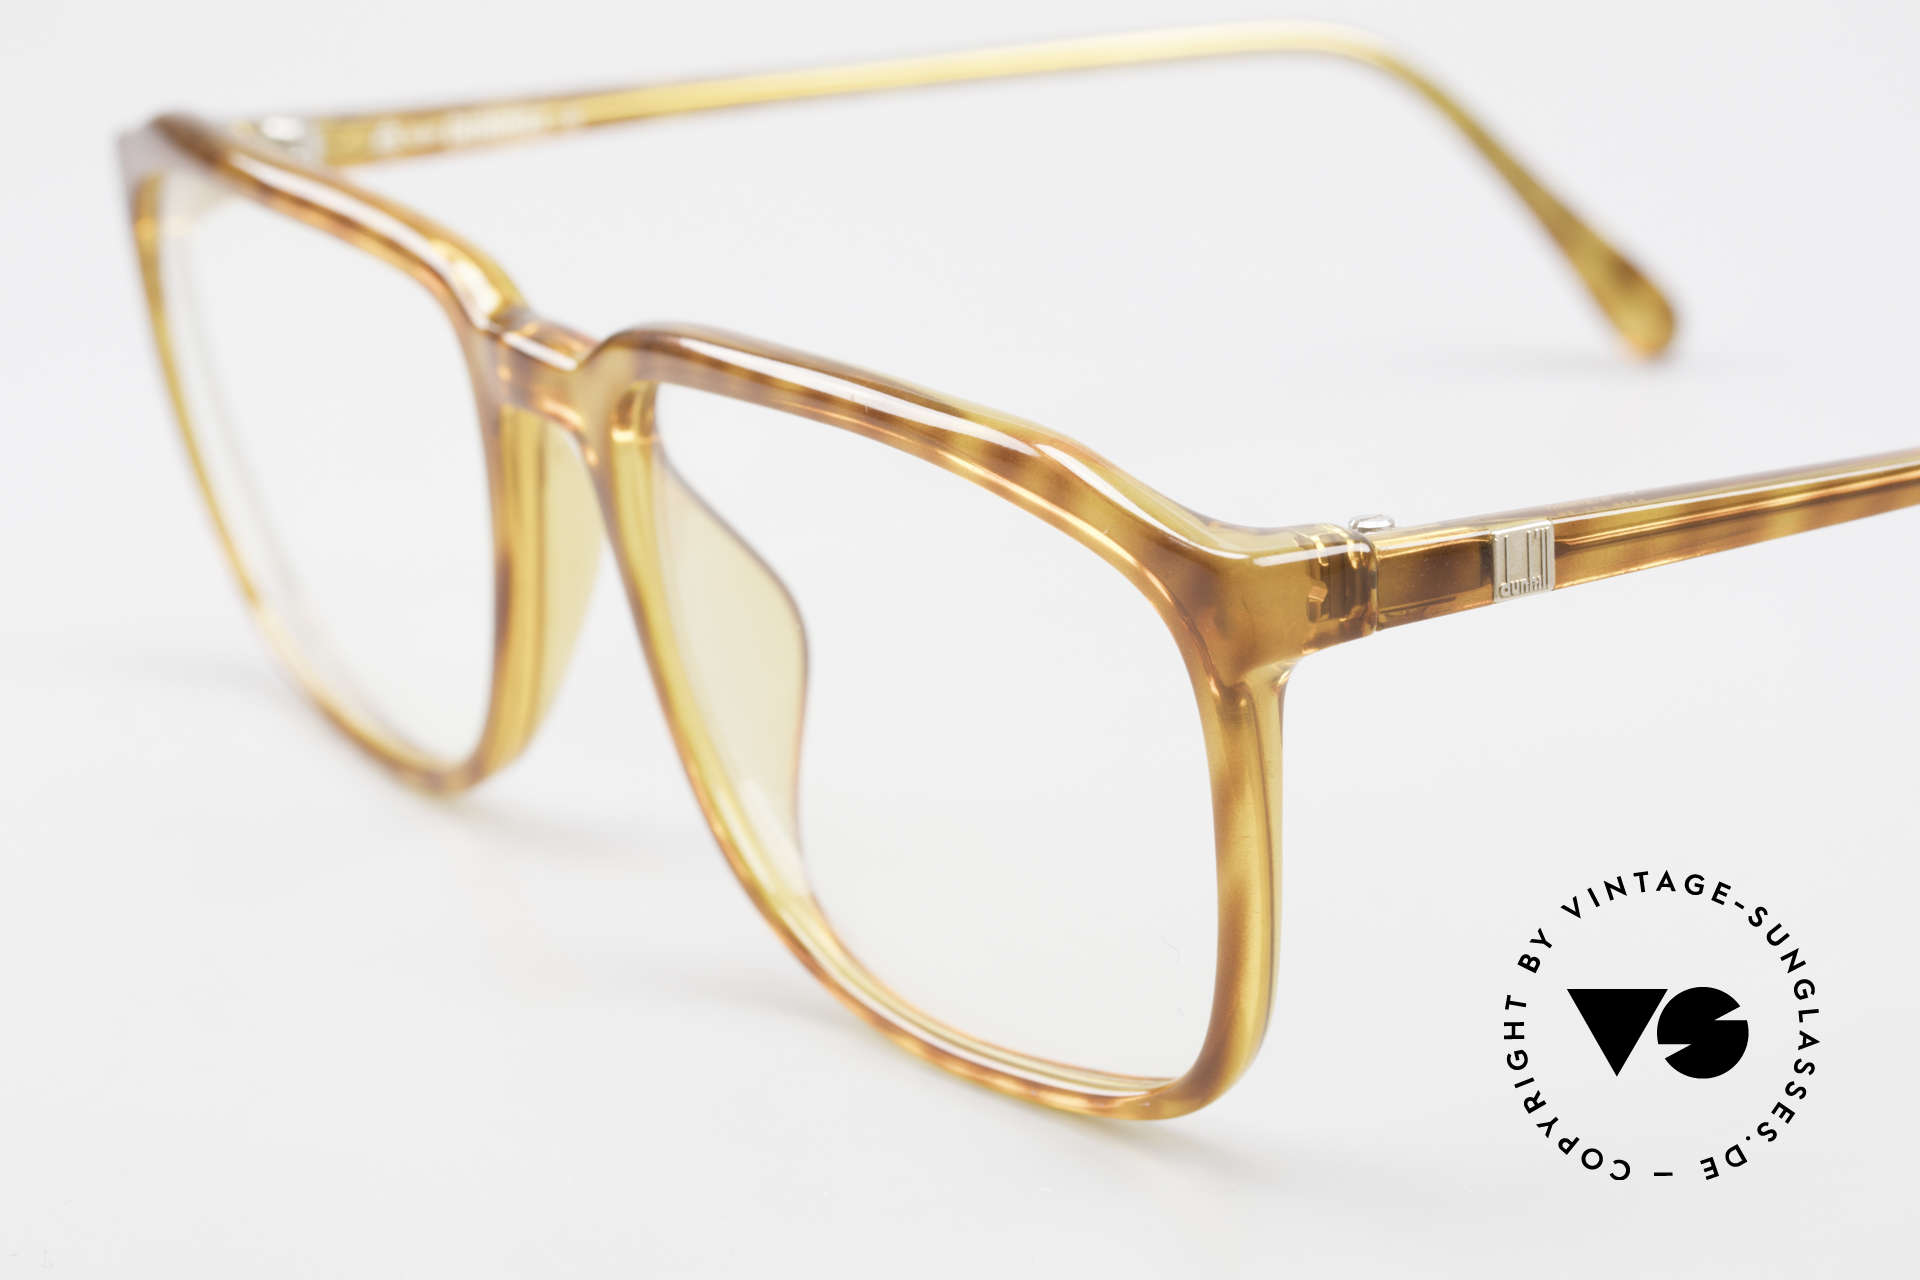 Dunhill 6133 Vintage Optyl Eyeglasses, 90's gentlemen's style (characteristical A. DUNHILL), Made for Men